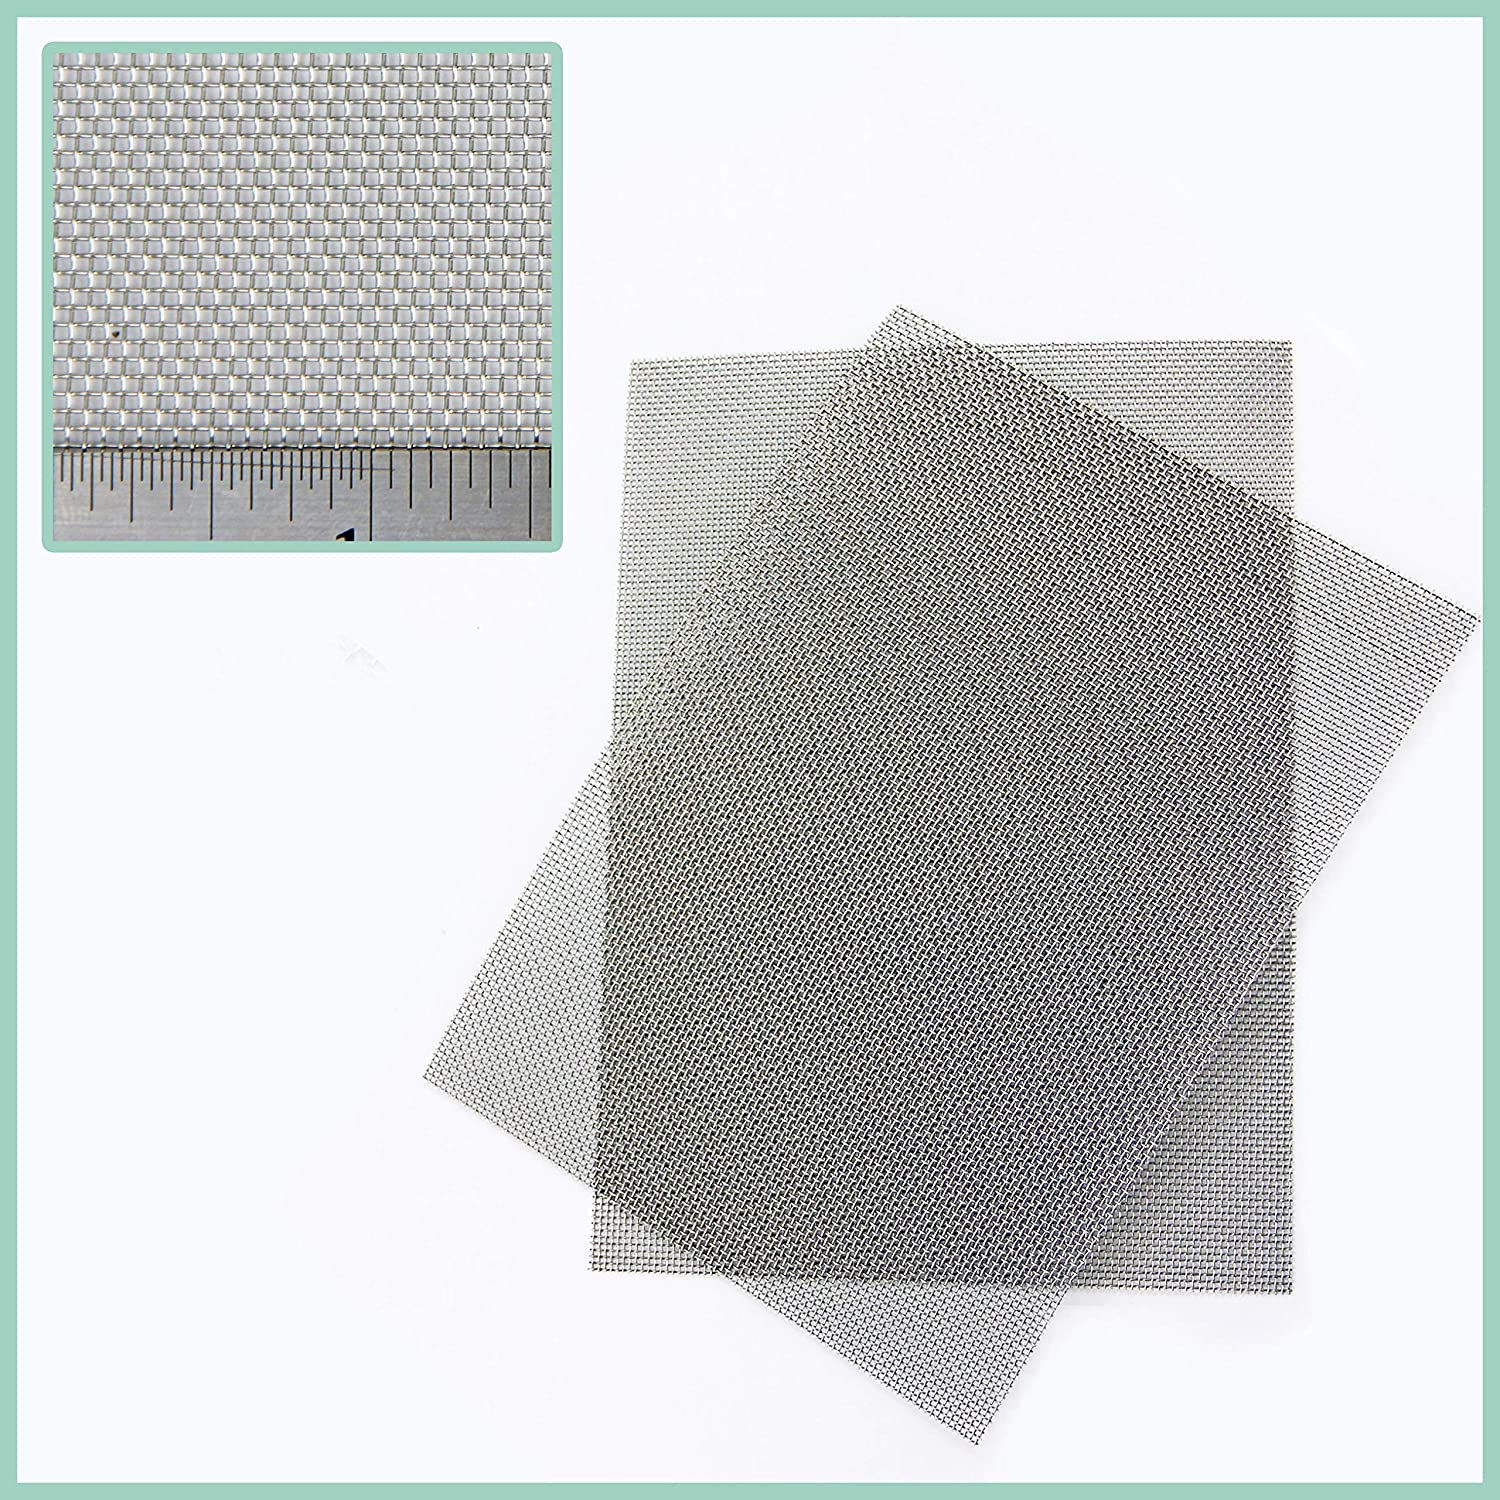 Rodent Mesh - Stainless Steel - 2 PACK- A5 Sheet (150 x 210mm) x 2 - Easy To Cut and Install The Mesh Company